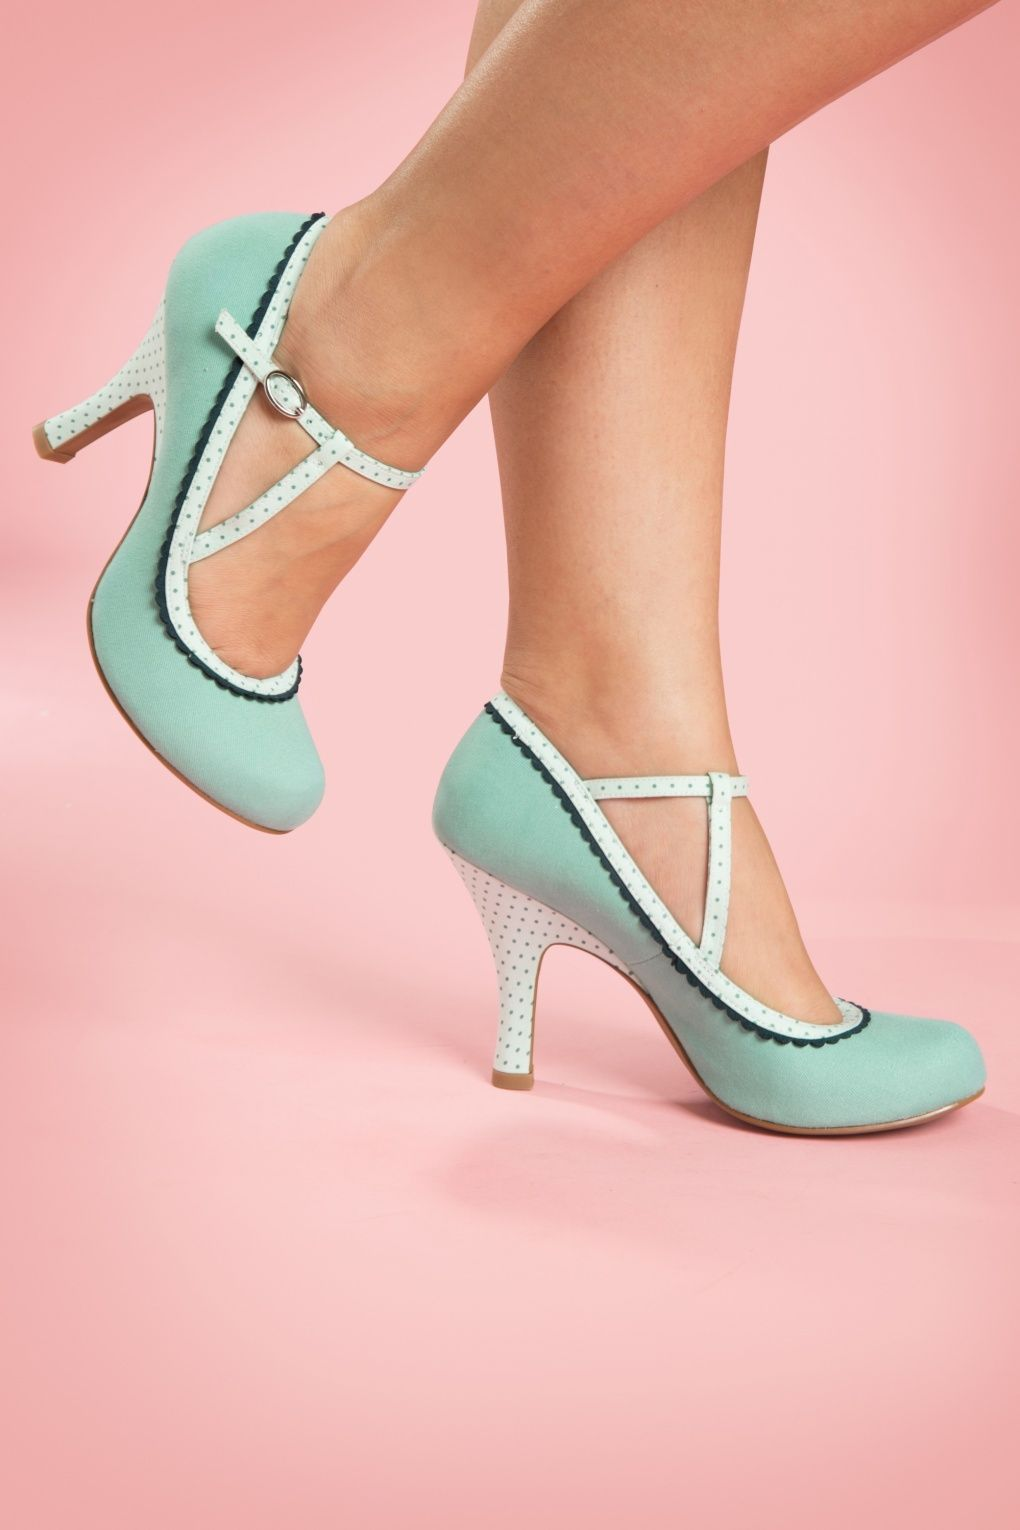 dc28c5c92859d 50s Jessica Ankle Strap Pumps in Mint | Shoes | Shoes, Pretty shoes ...